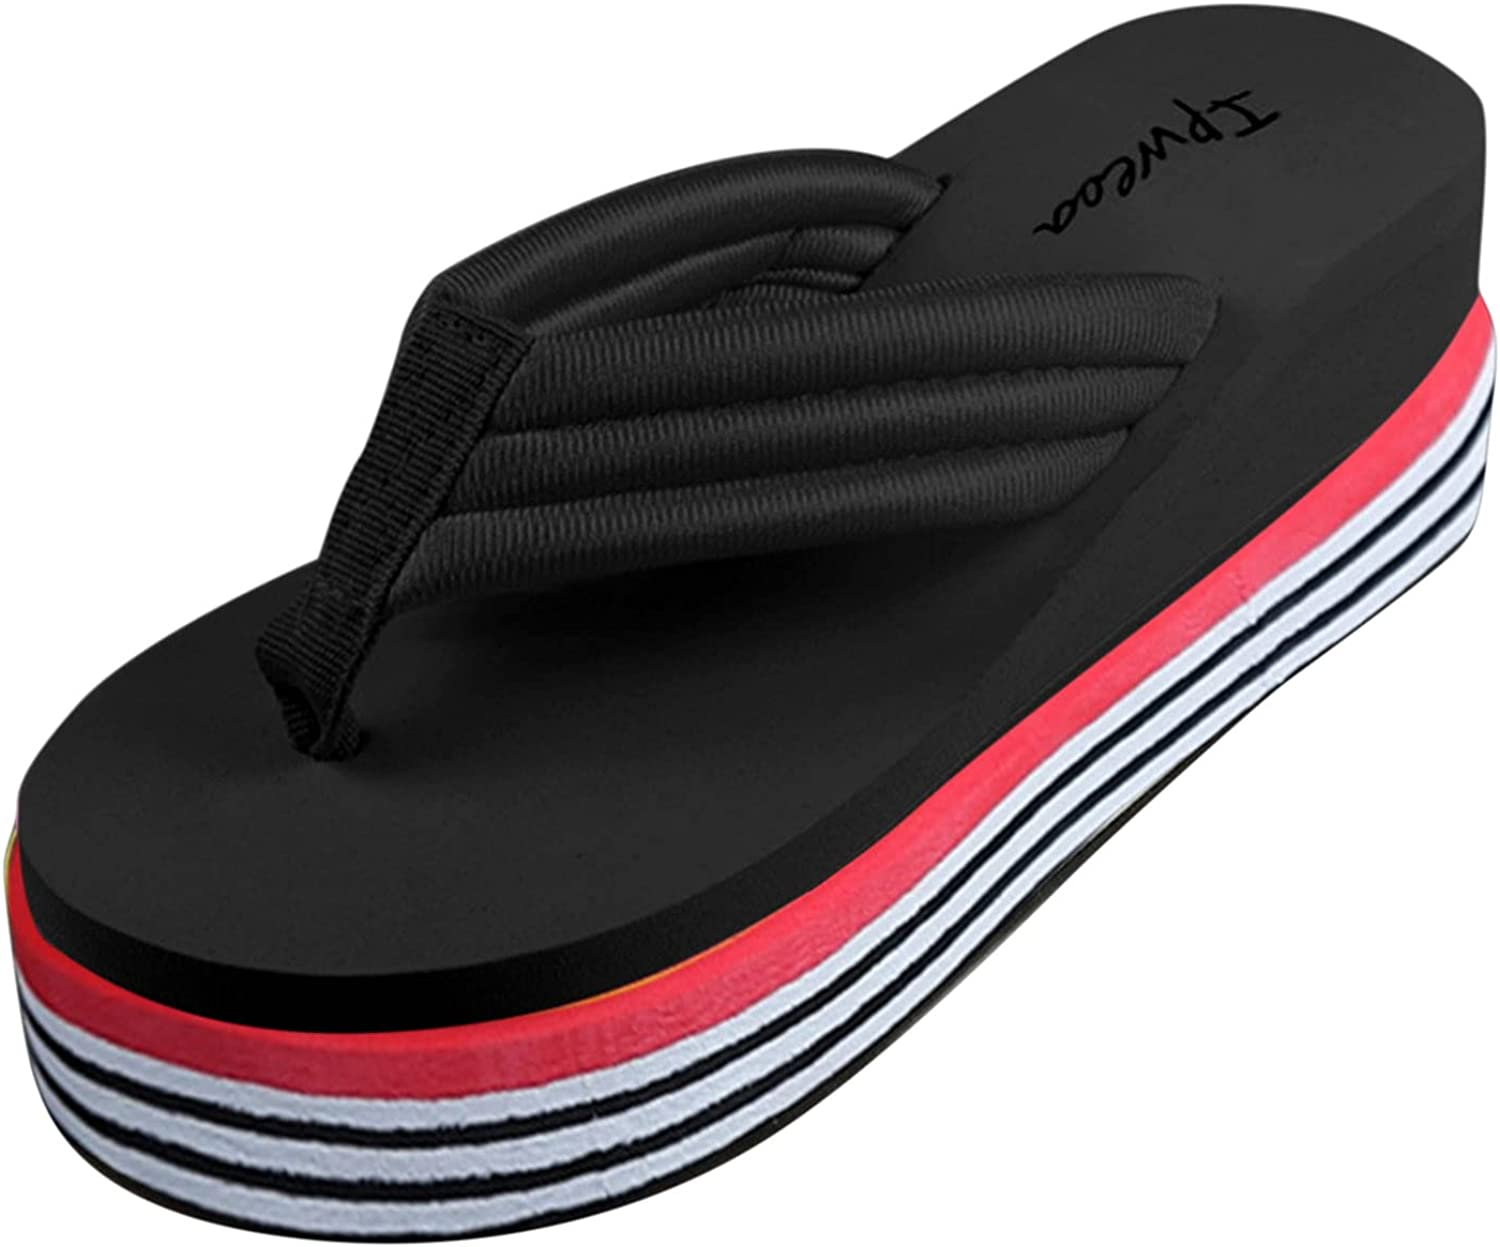 Platform Max 88% OFF Flips Flops for Free shipping Women Household S Beach Pool Ladies